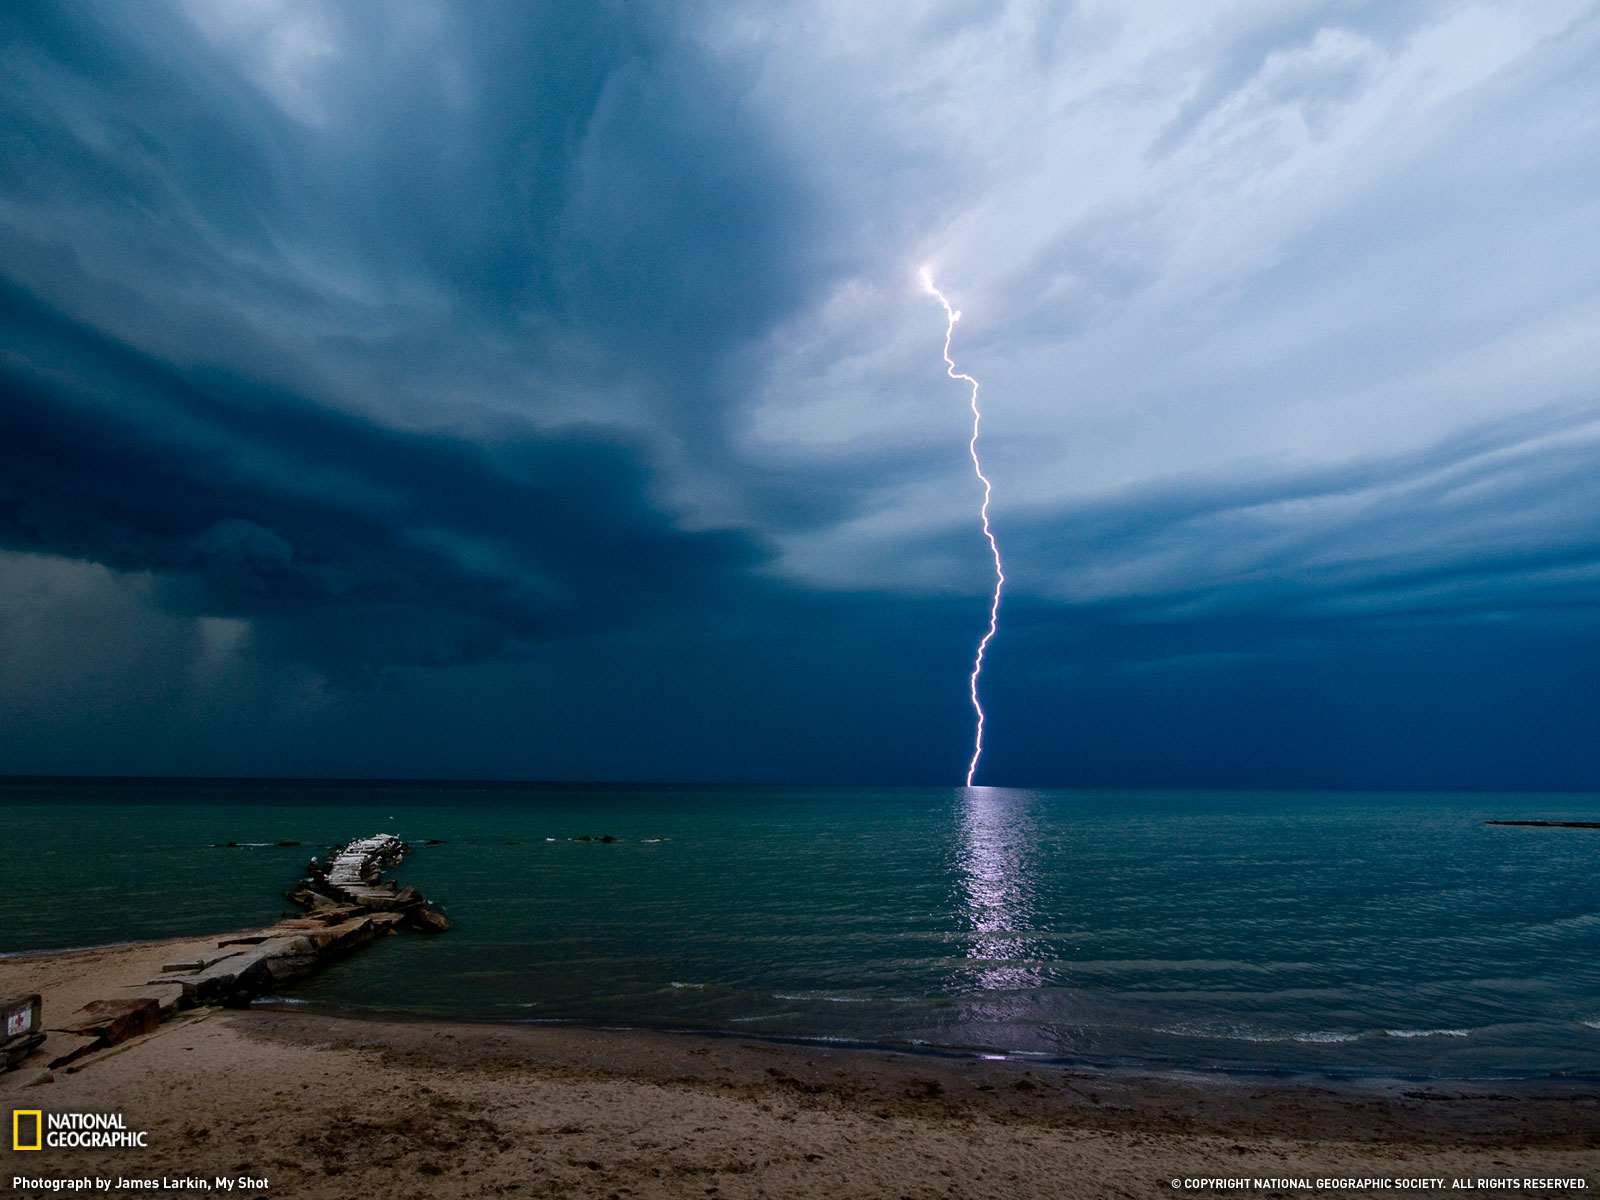 Best pictures for August from National Geographic